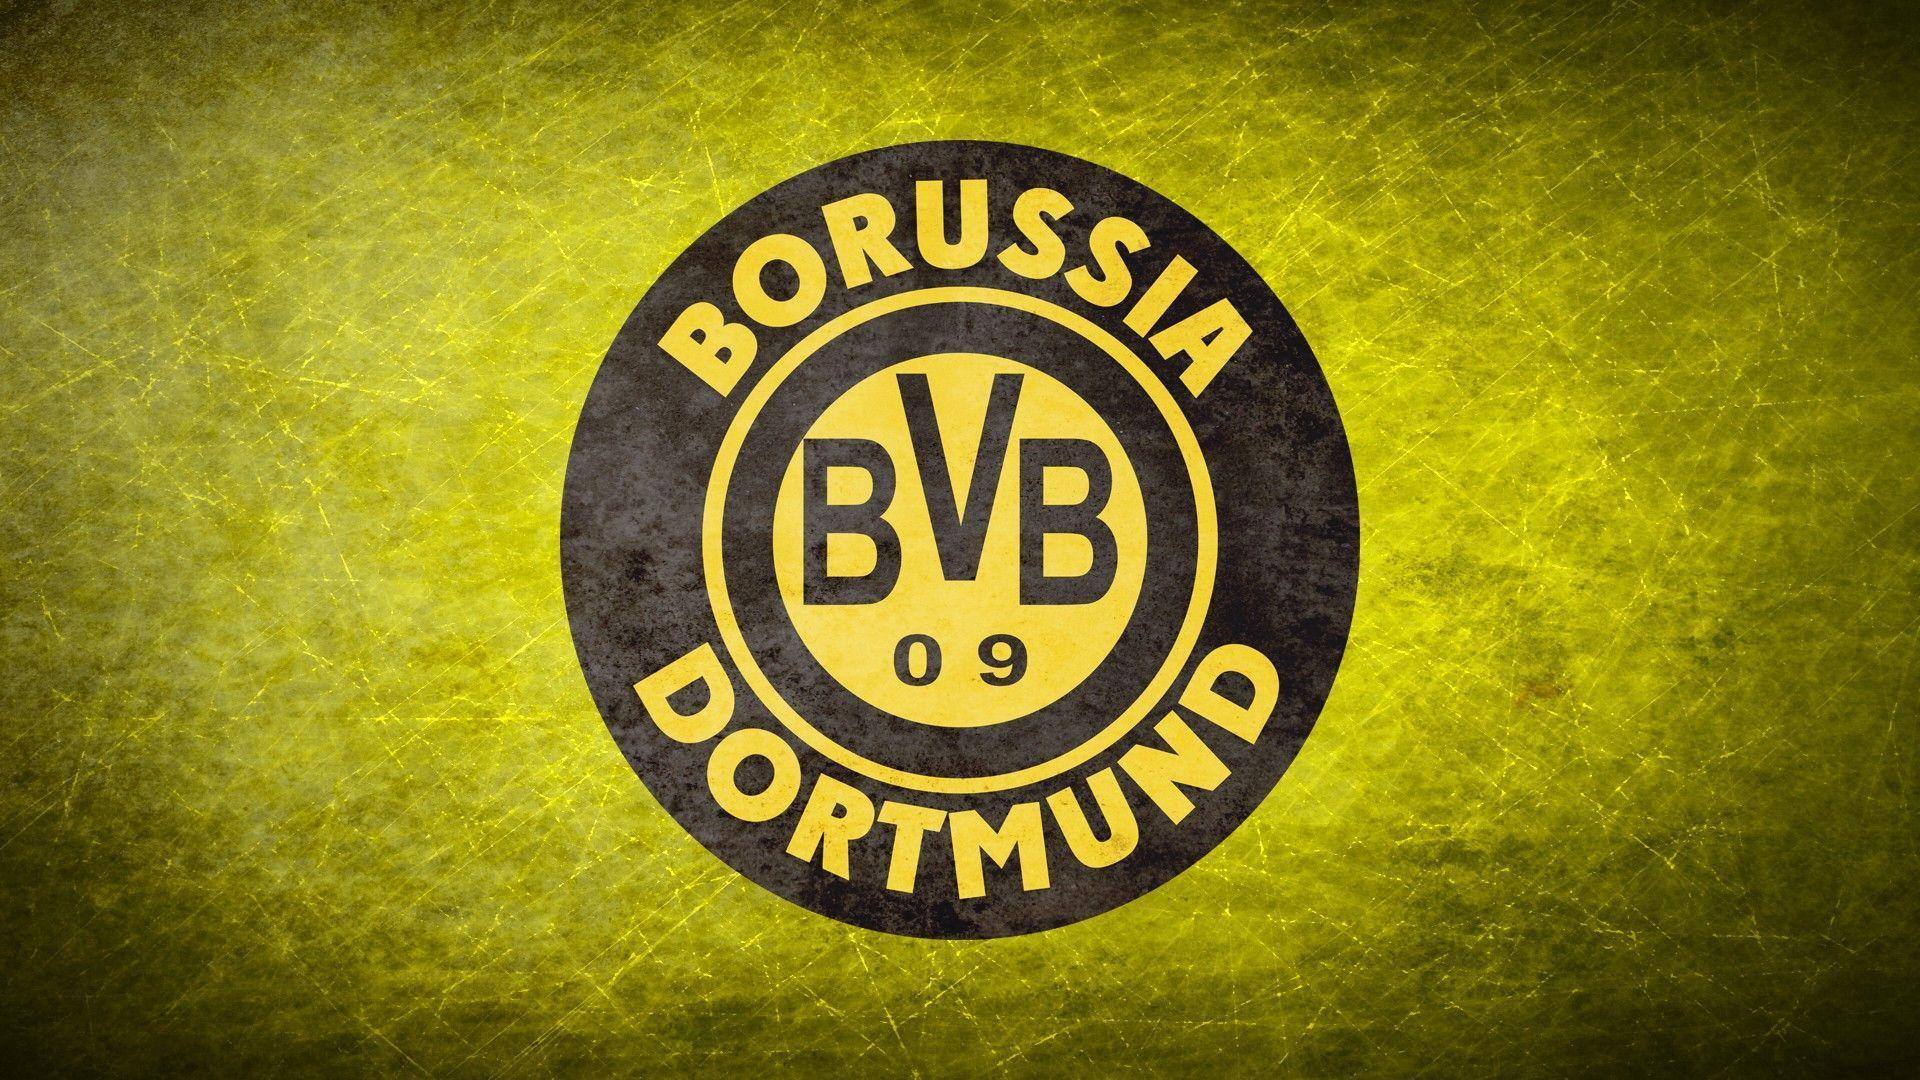 Borussia Dortmund Wallpapers Wallpaper Cave